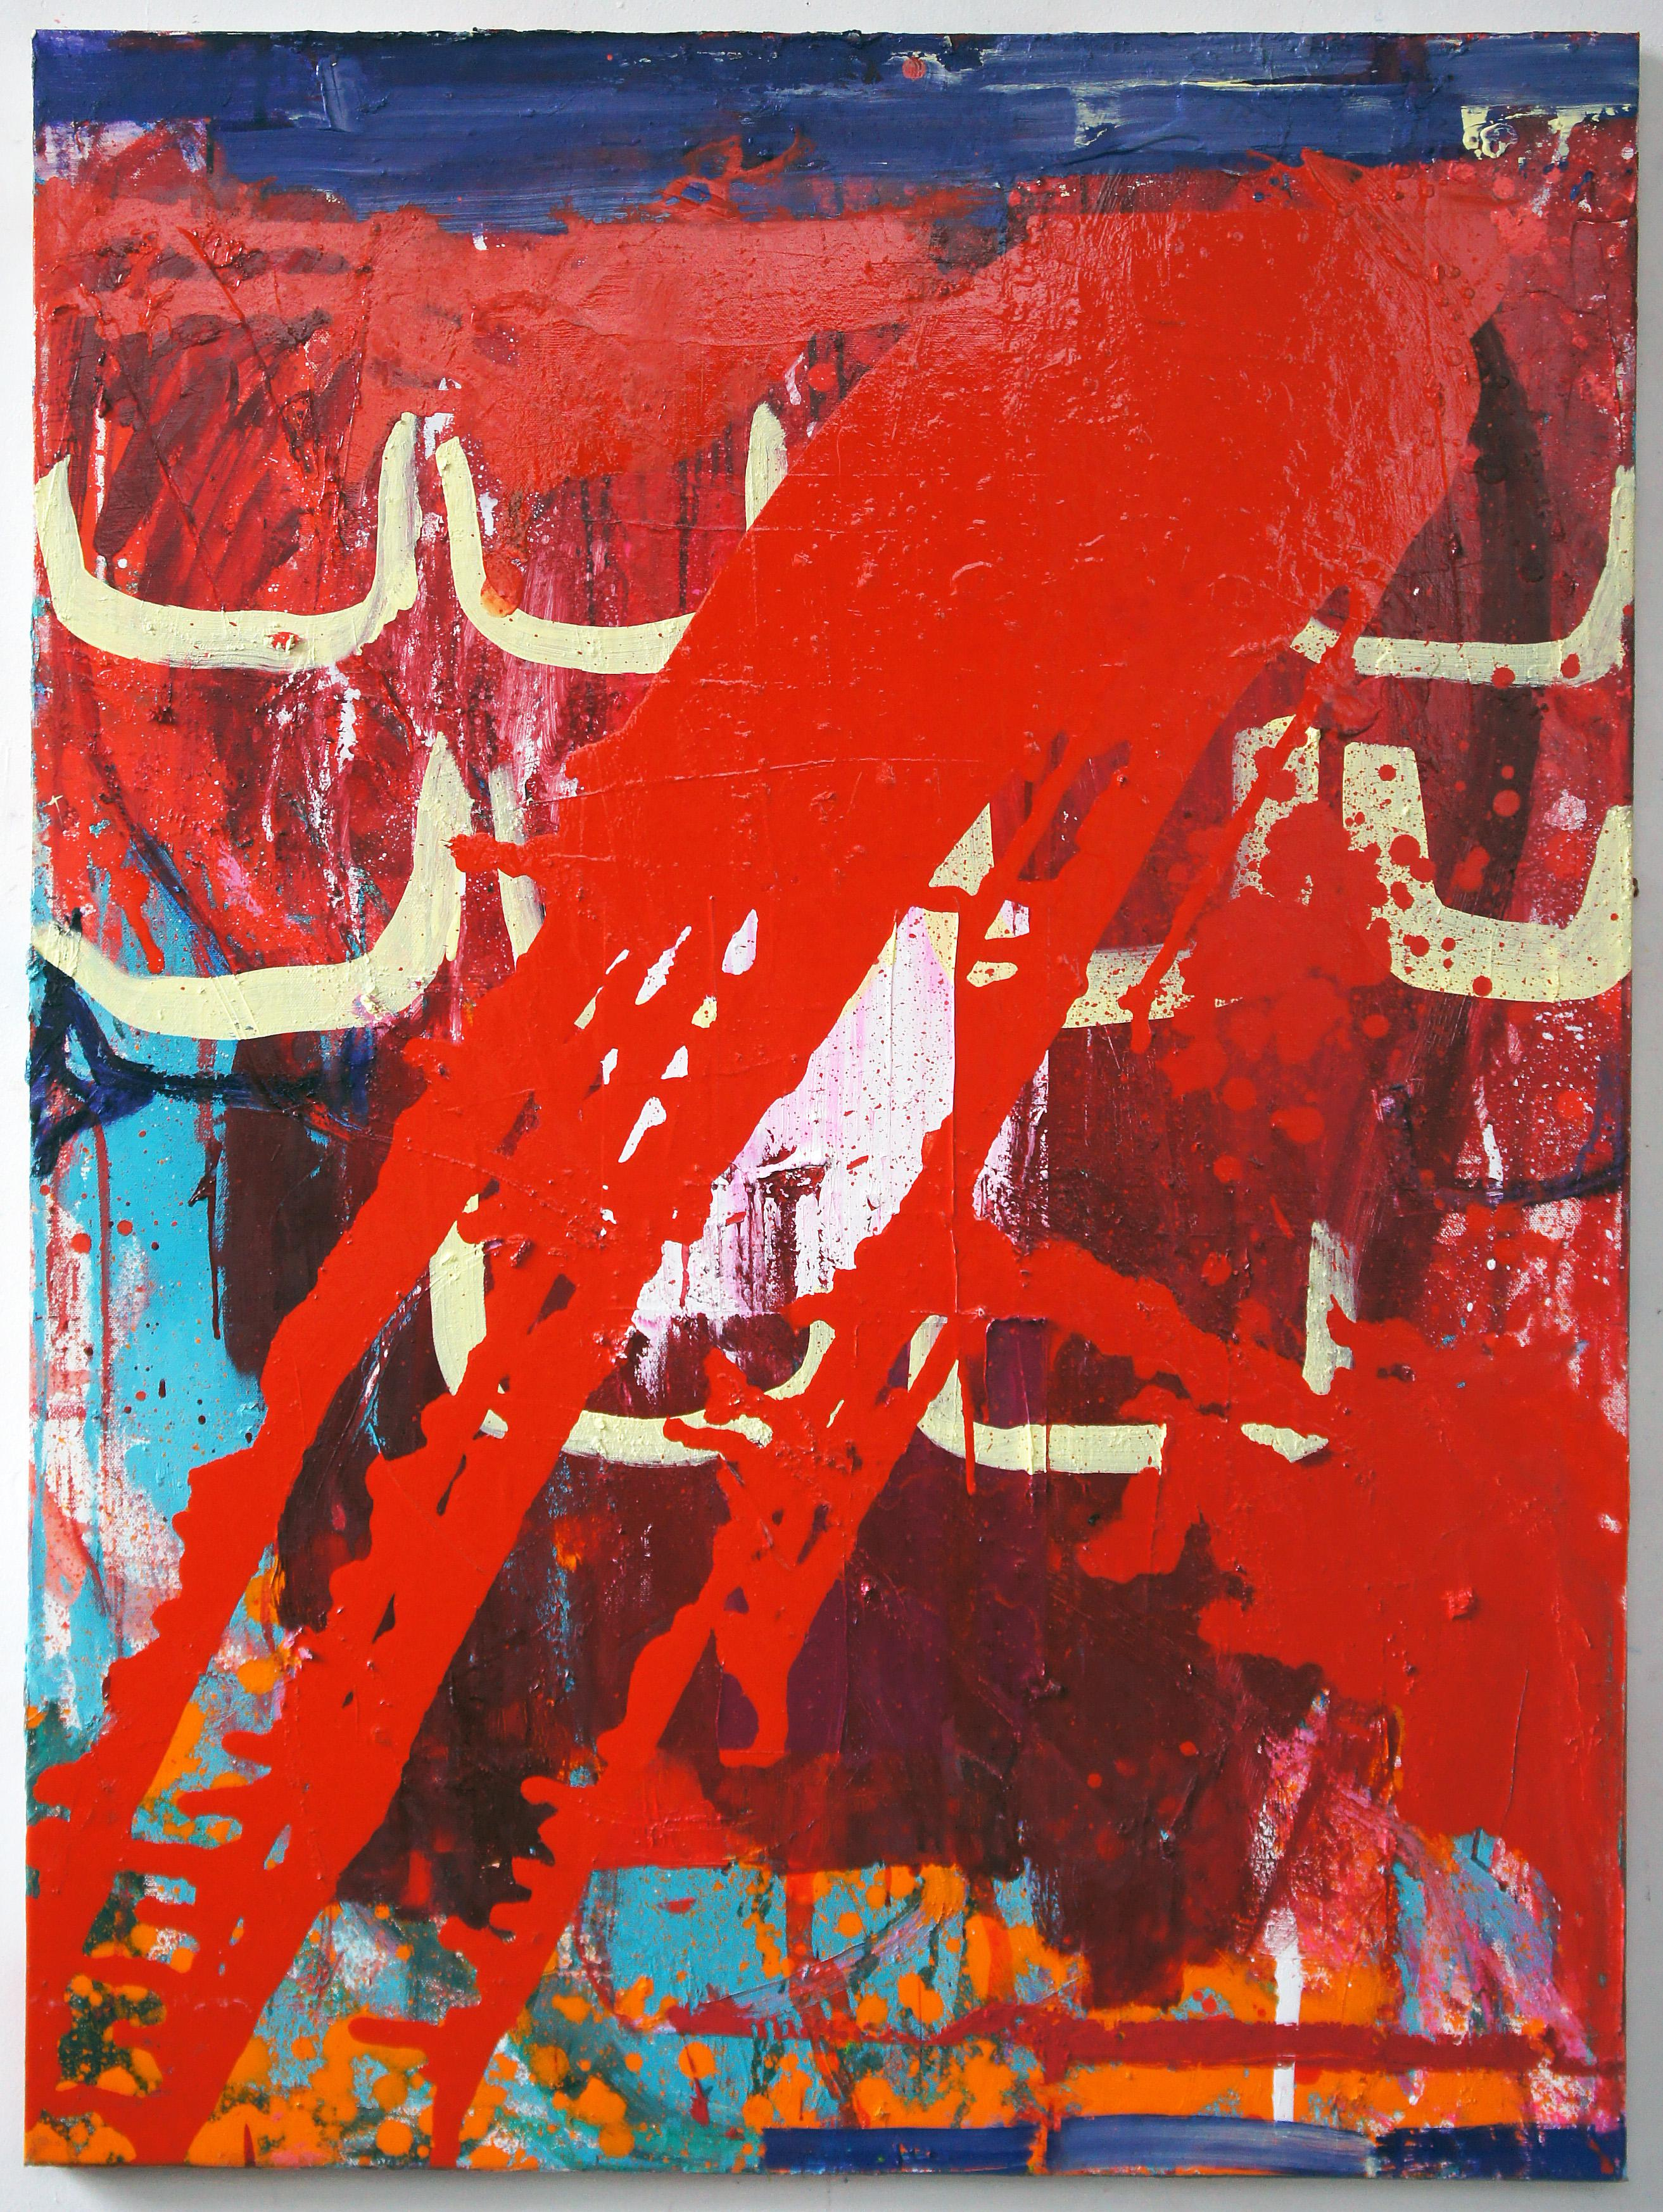 Red Lightning, Abstract Contemporary Painting on Canvas by Japanese Woman Artist